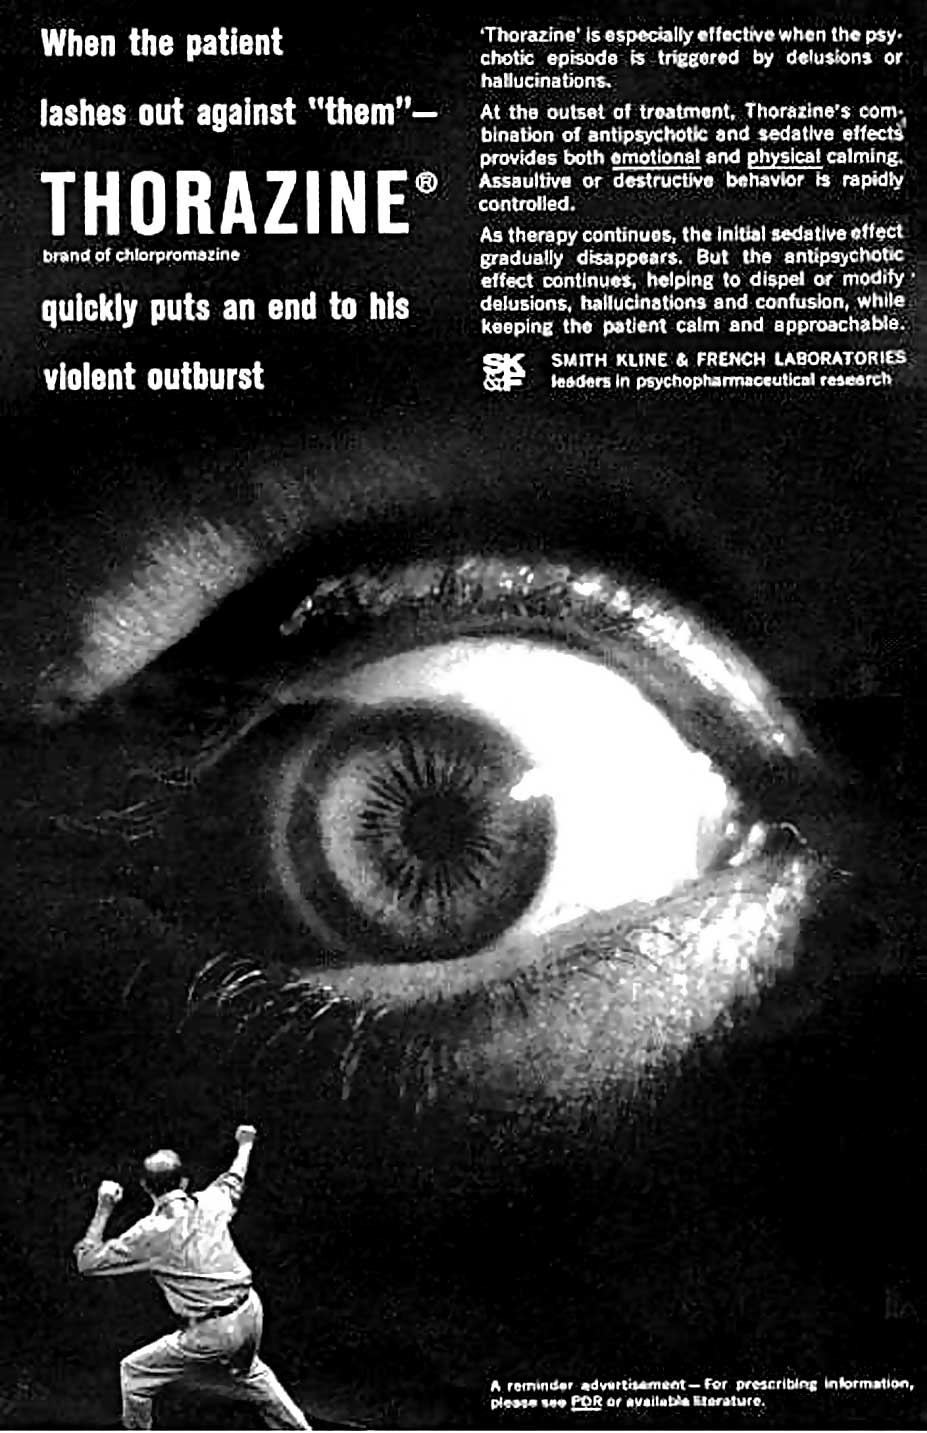 1960s advertisement for Thorazine, a brand of chlorpromazine, which was used to treat the psychotic symptoms of schizophrenia.   Unknown author/Wikimedia Commons  (public domain)